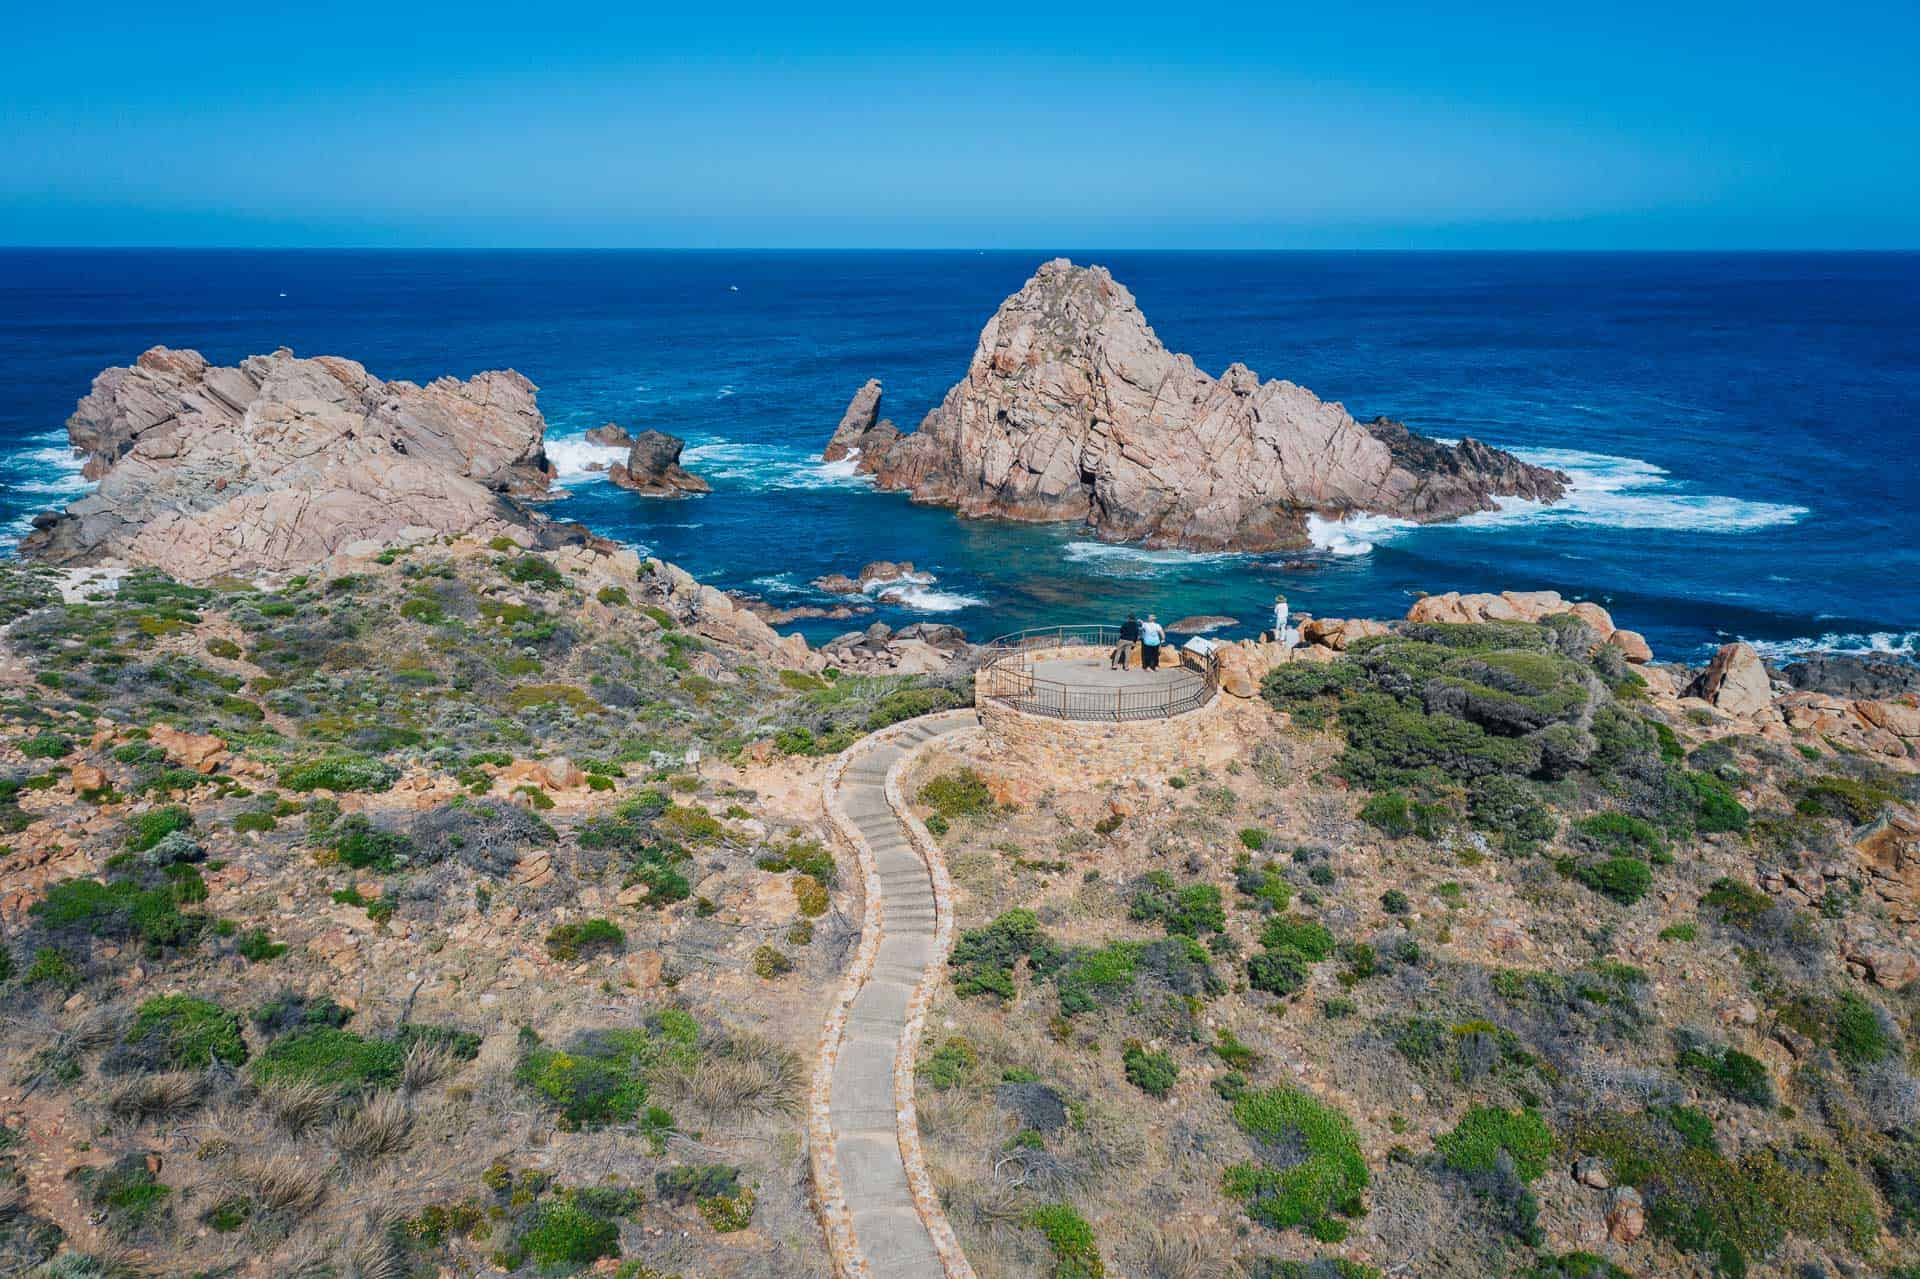 things to do in margaret river, what to do in margaret river, best things to do in margaret river, things to do margaret river, sugarloaf rock